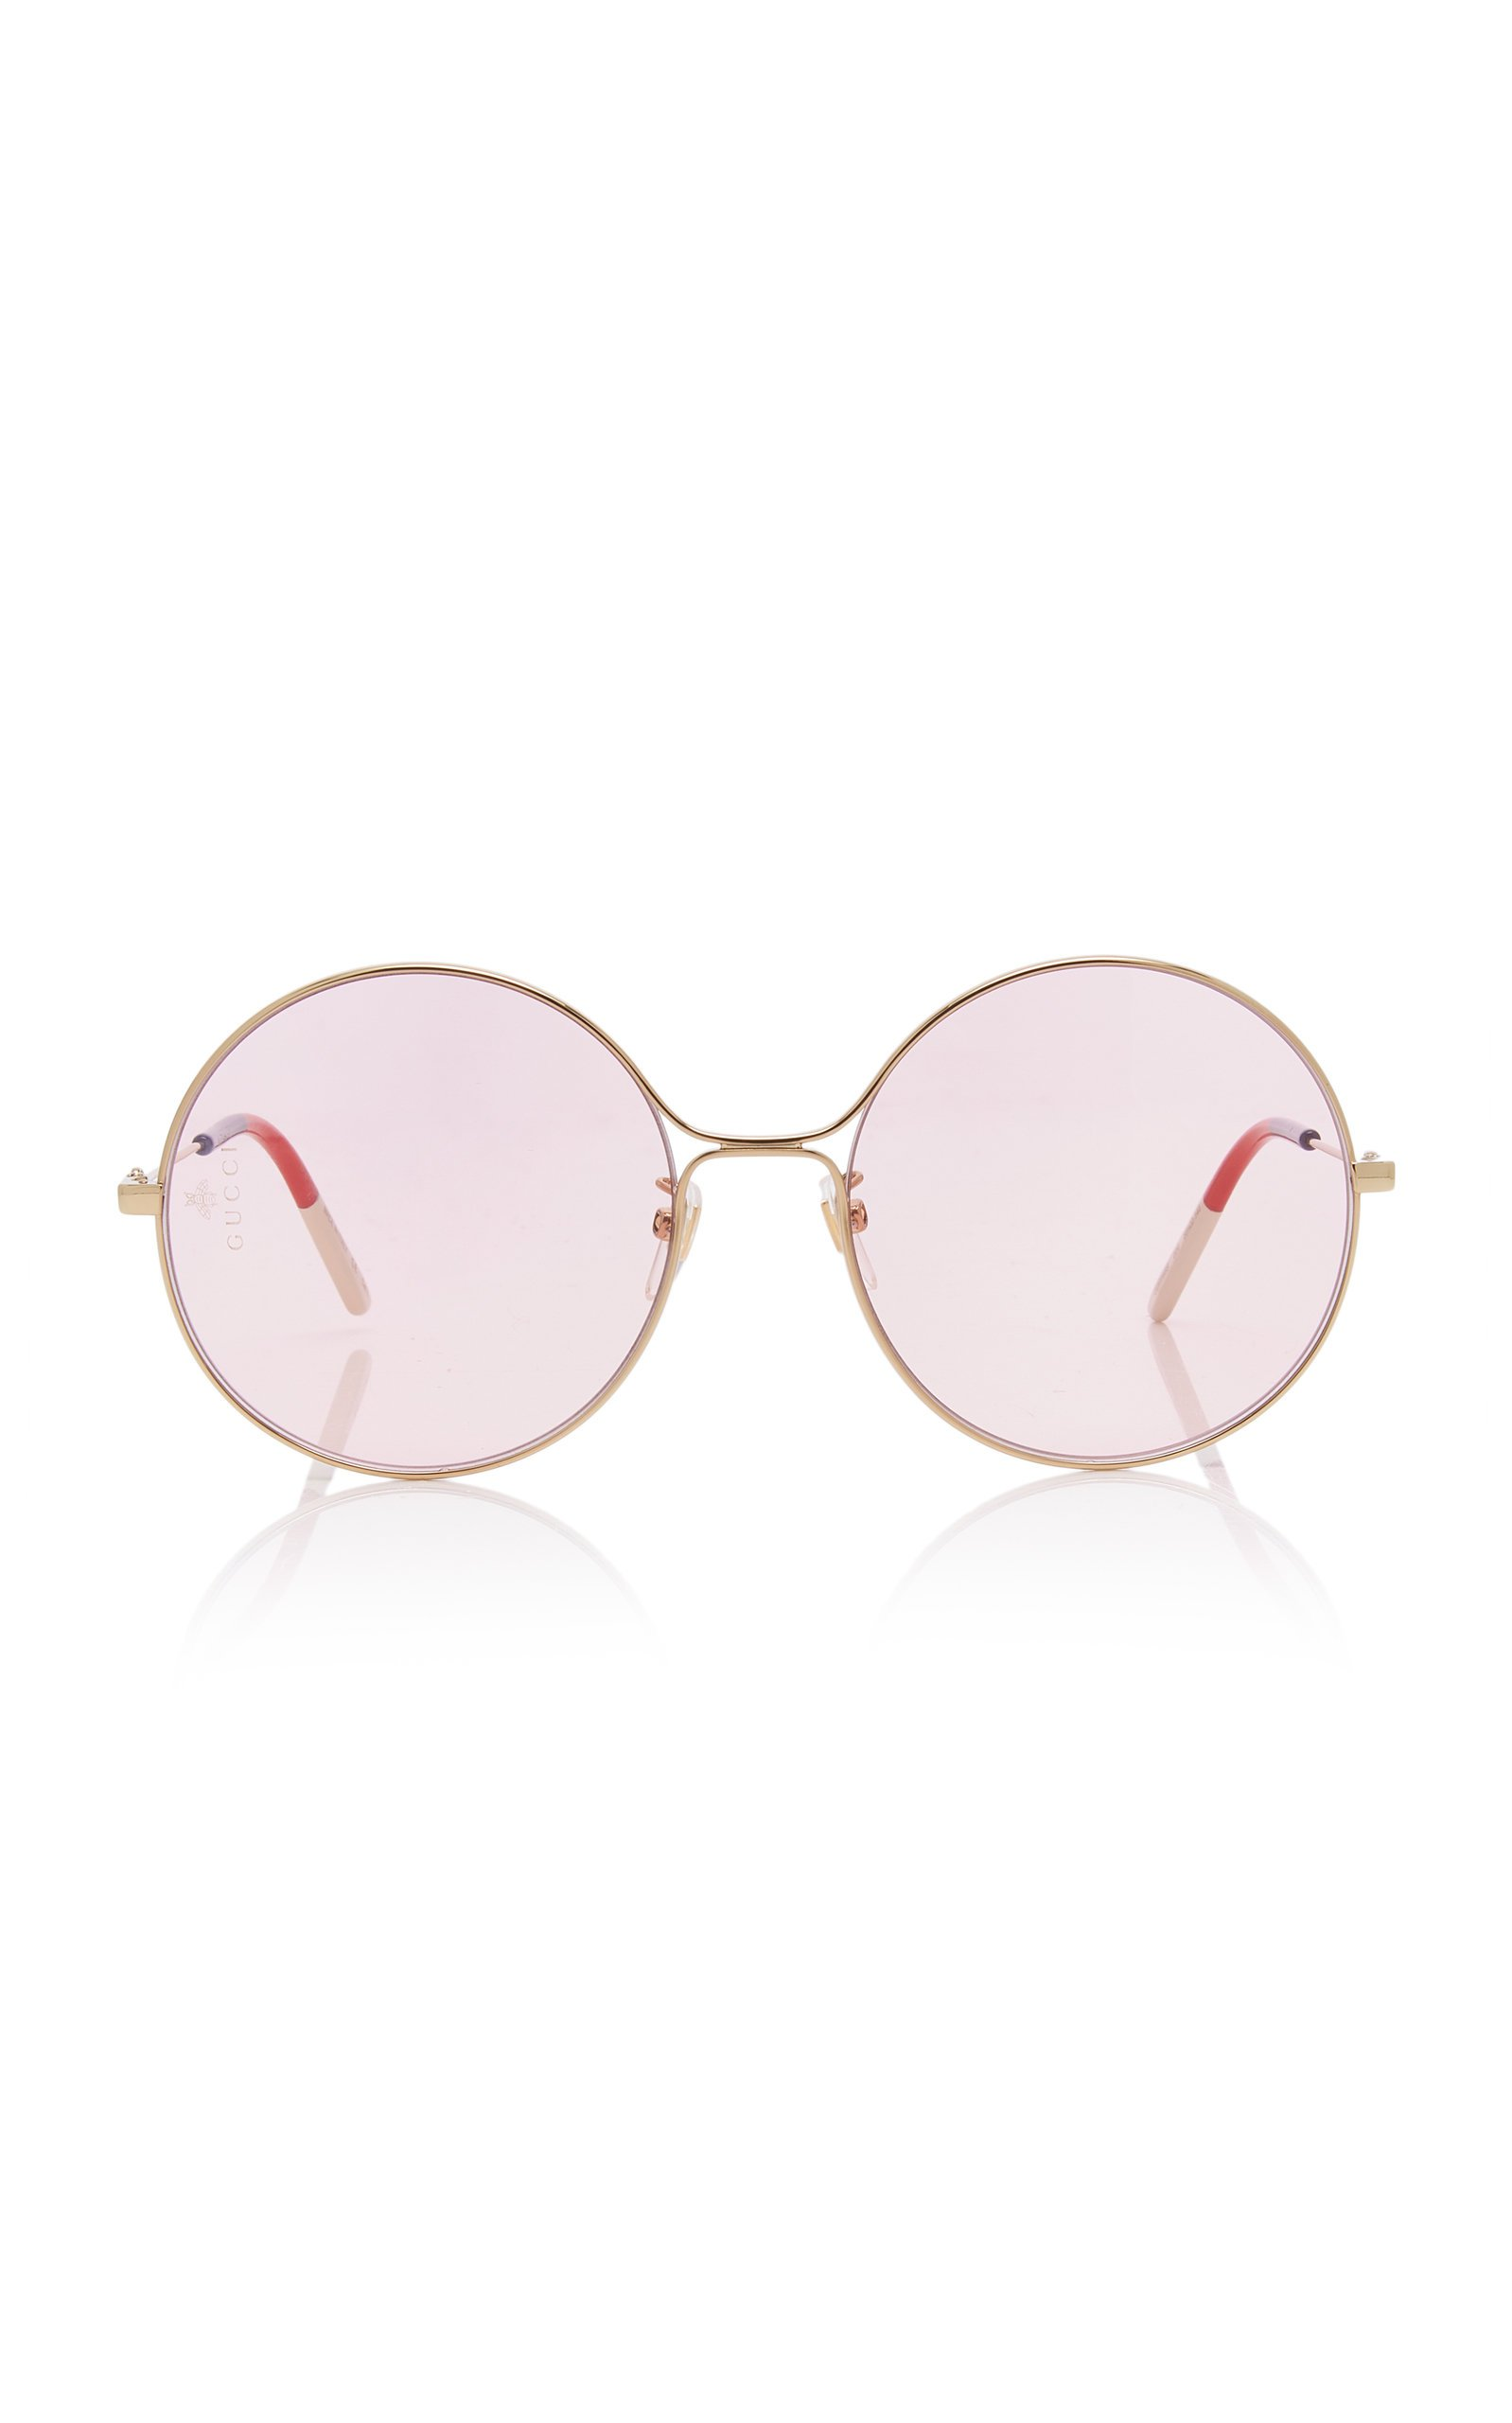 Gucci Sunglasses Glasant Oversized Metal Round Sunglasses